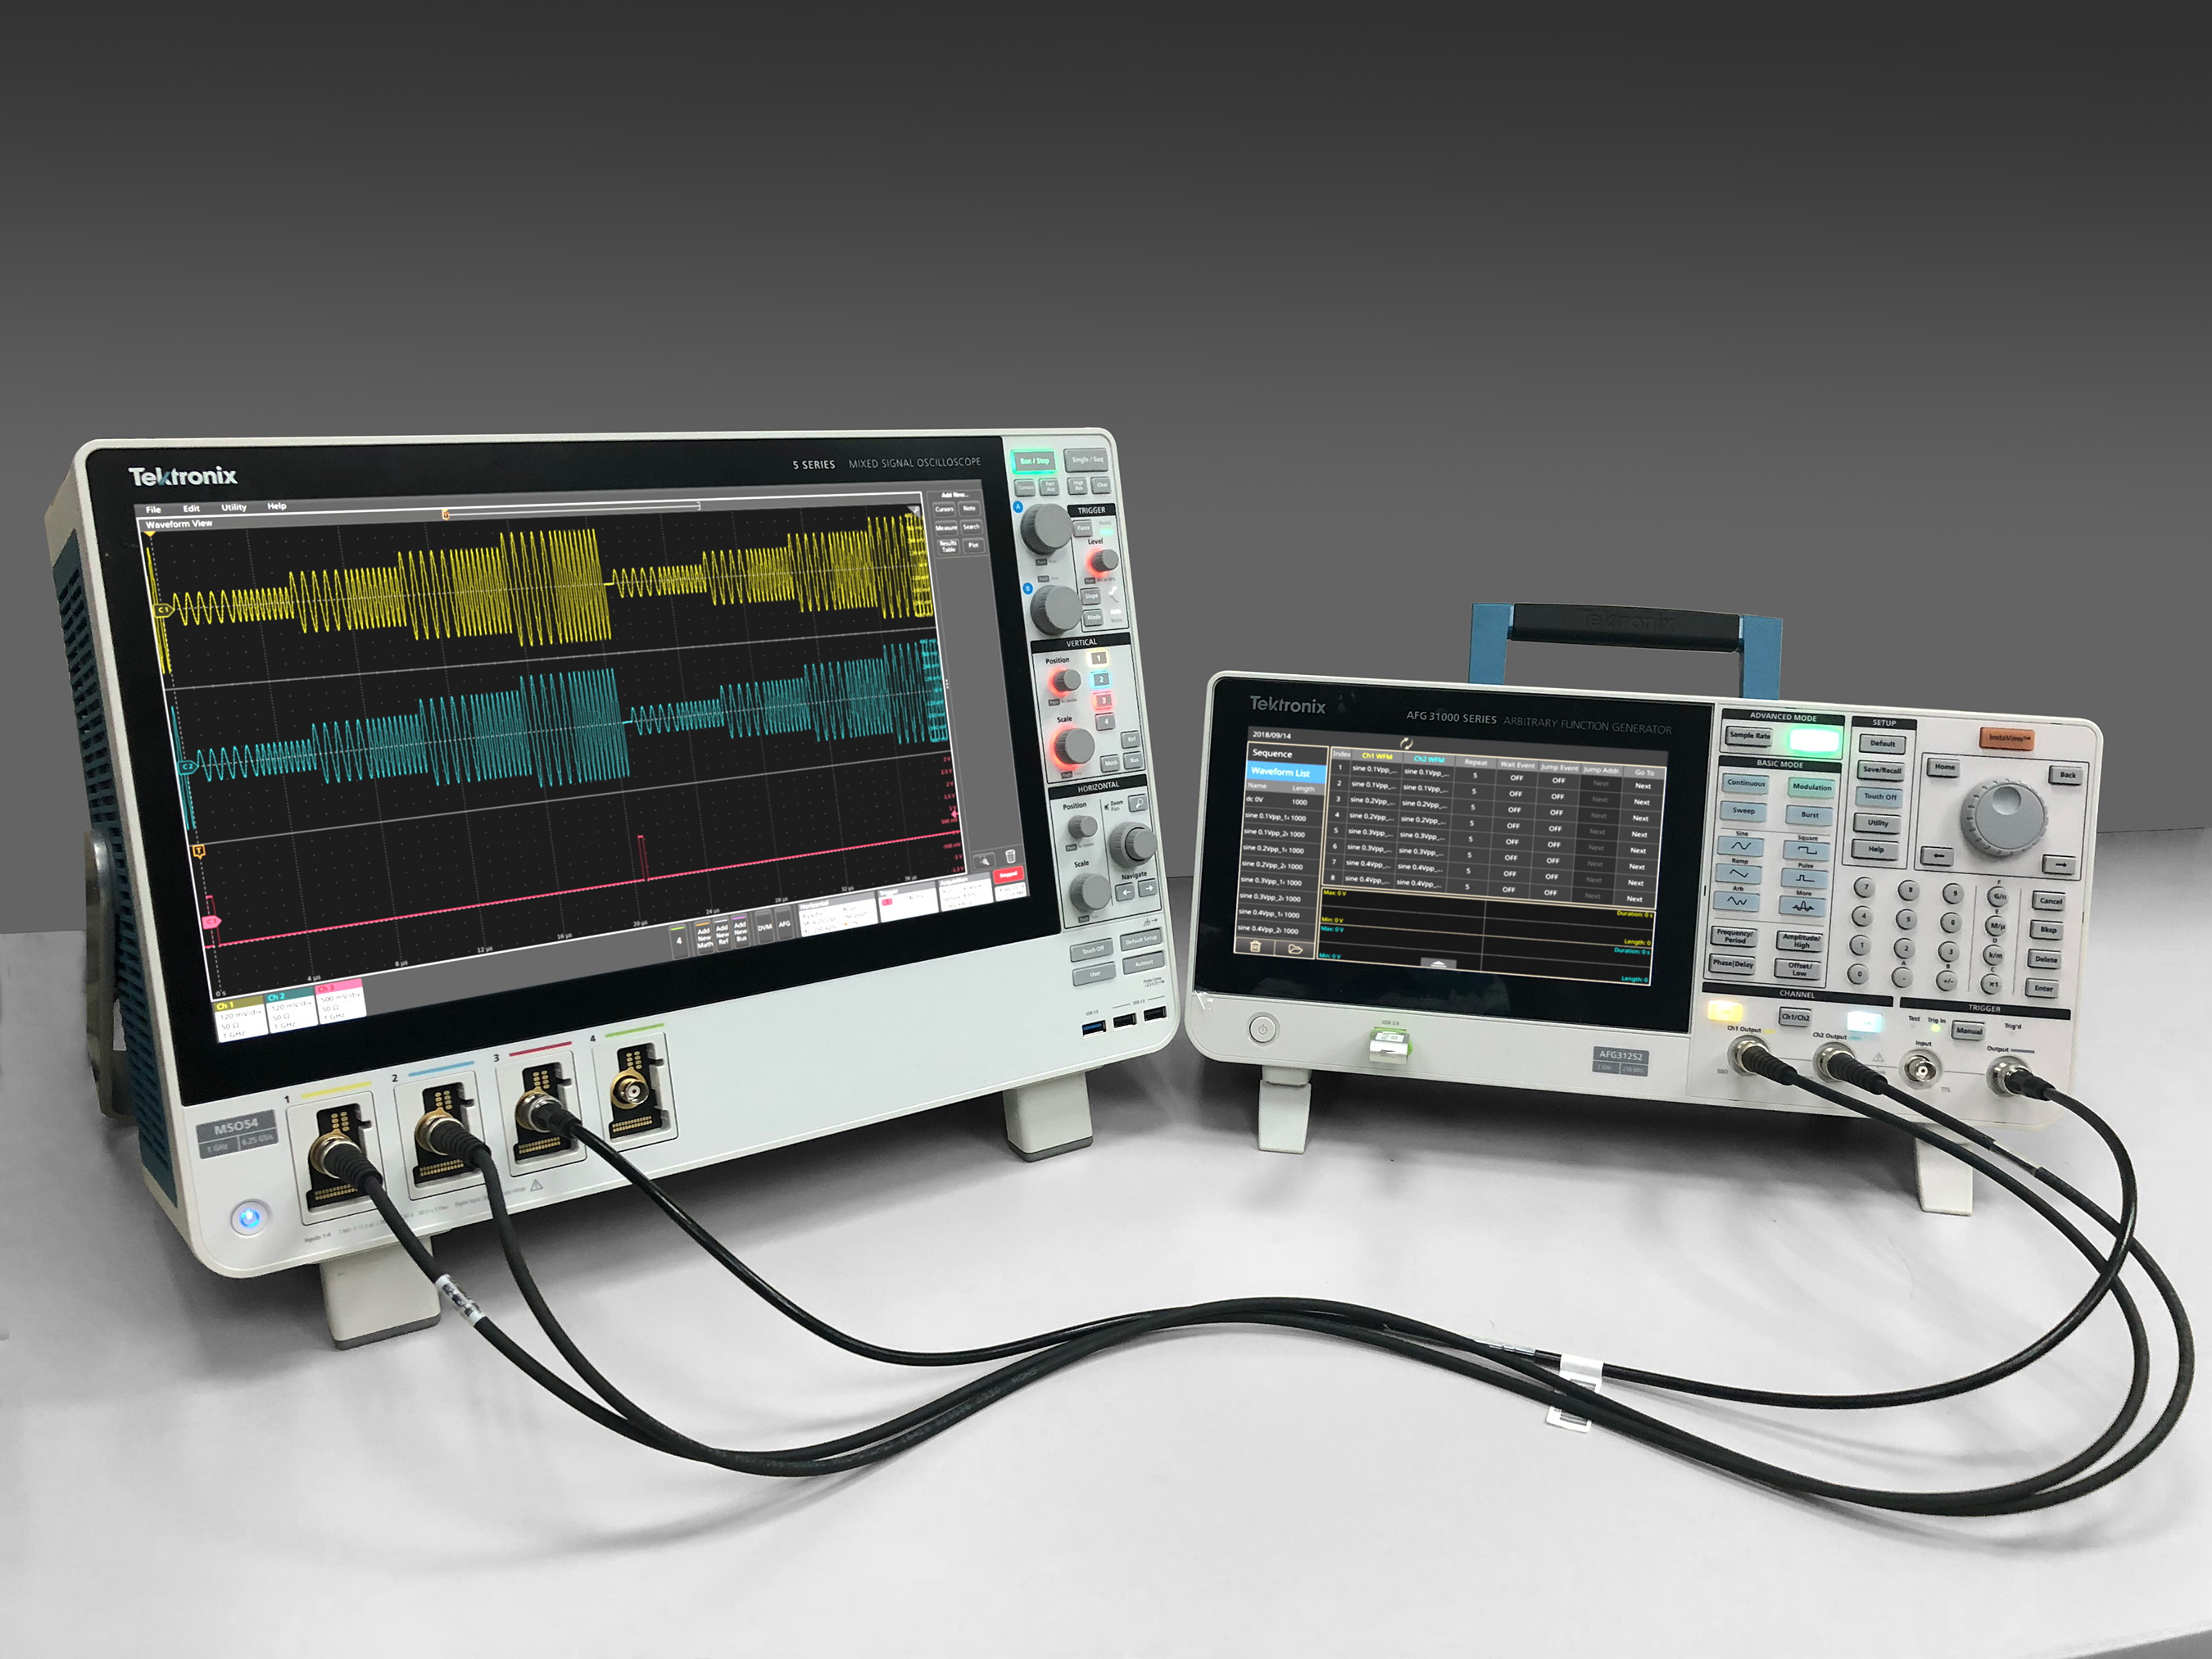 Like an MP3 player, the AFG31000 can output waveforms in a user-defined sequence, offering AWG functionality for a fraction of the cost.